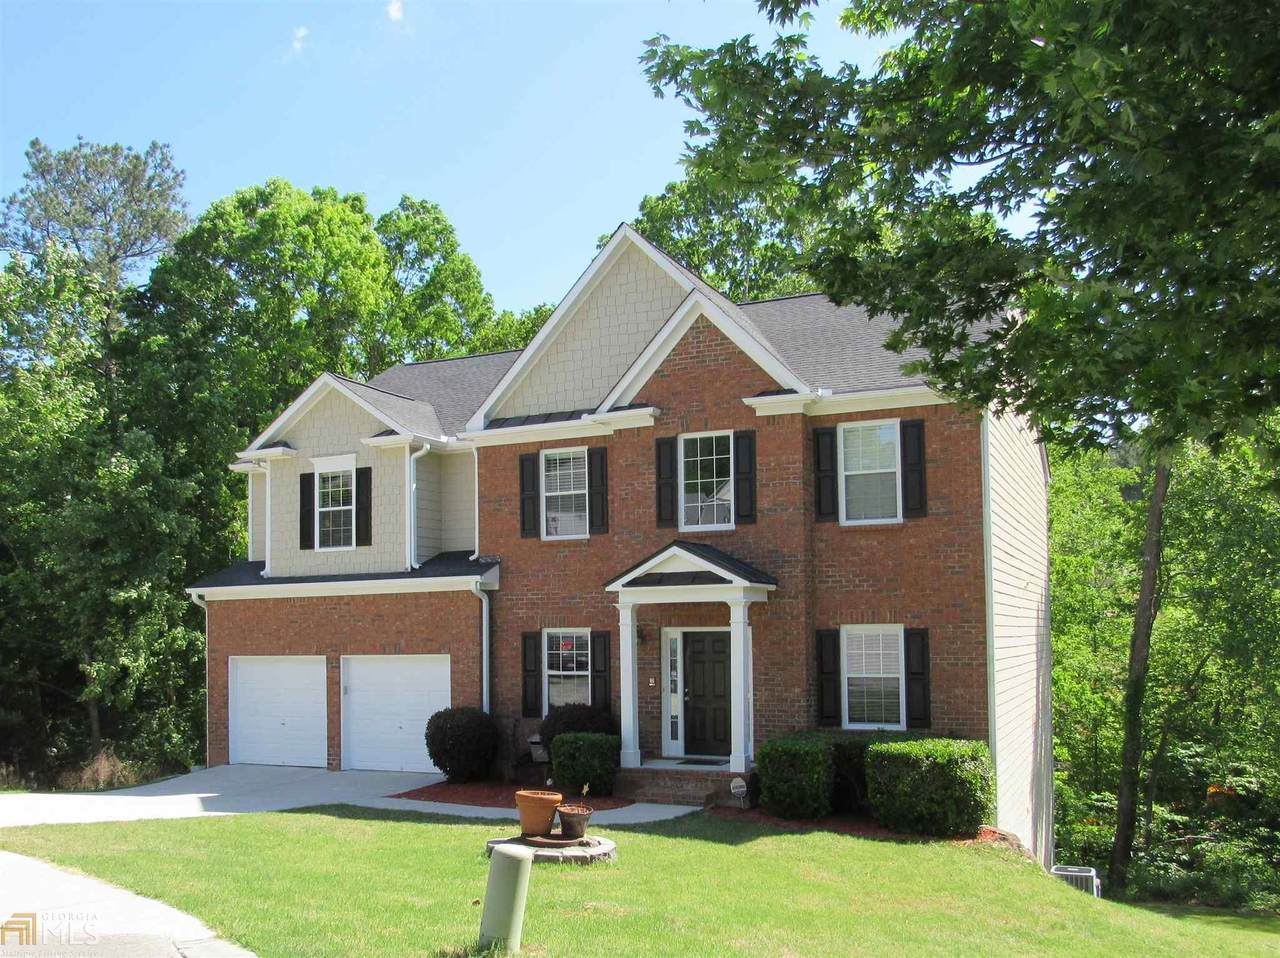 1651 Misty Valley Dr - Photo 1